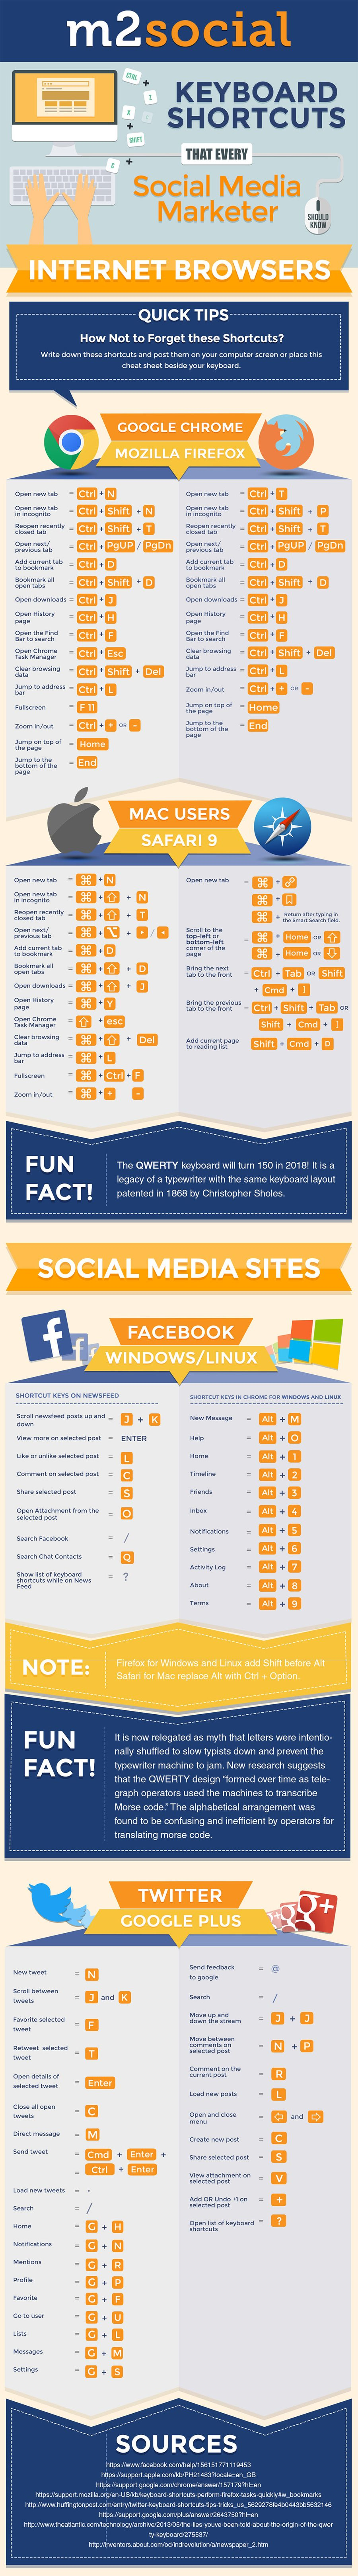 50+ Social Media Keyboard Shortcuts to Make Your Life Easier [Infographic] | Social Media Today